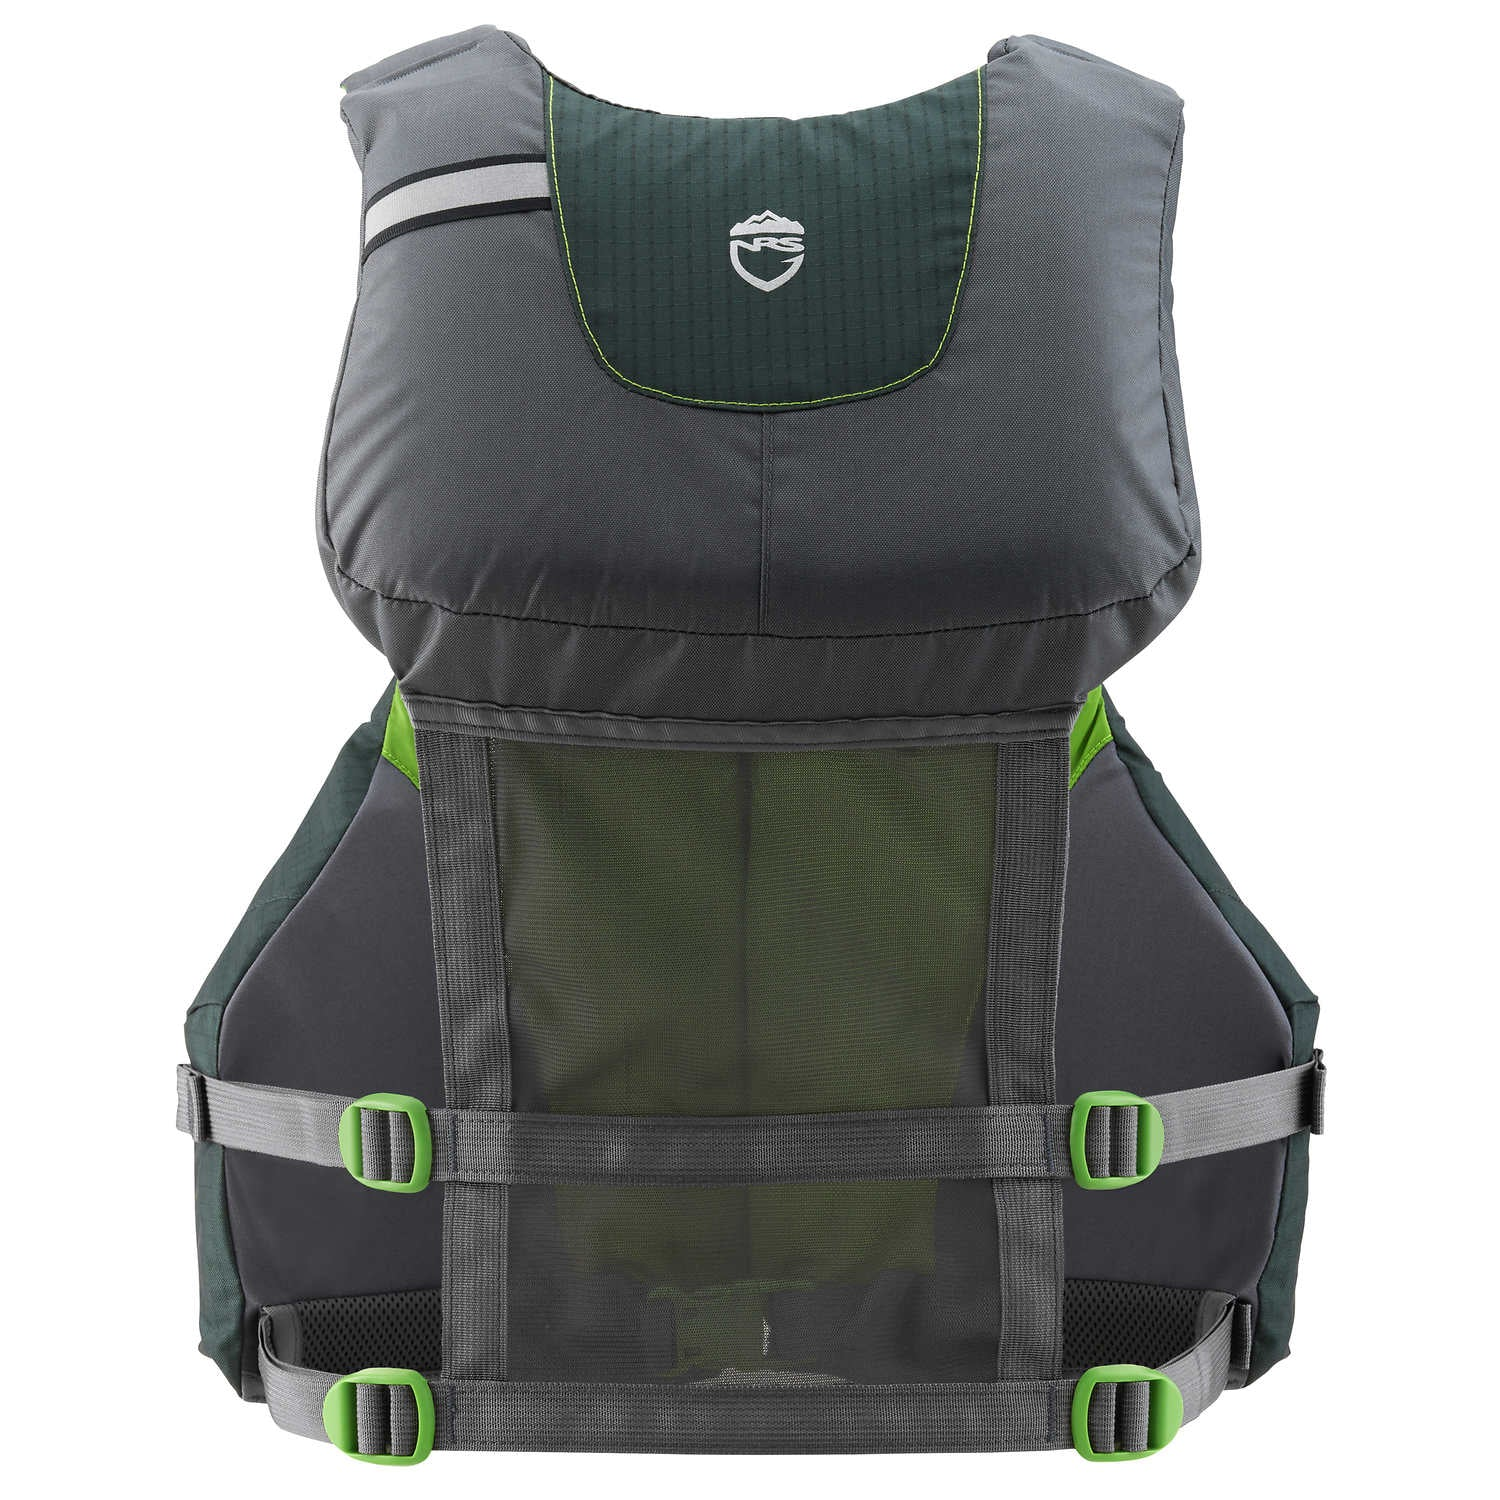 PFD - NRS 2019 Chinook fishing Life Jacket - PFD